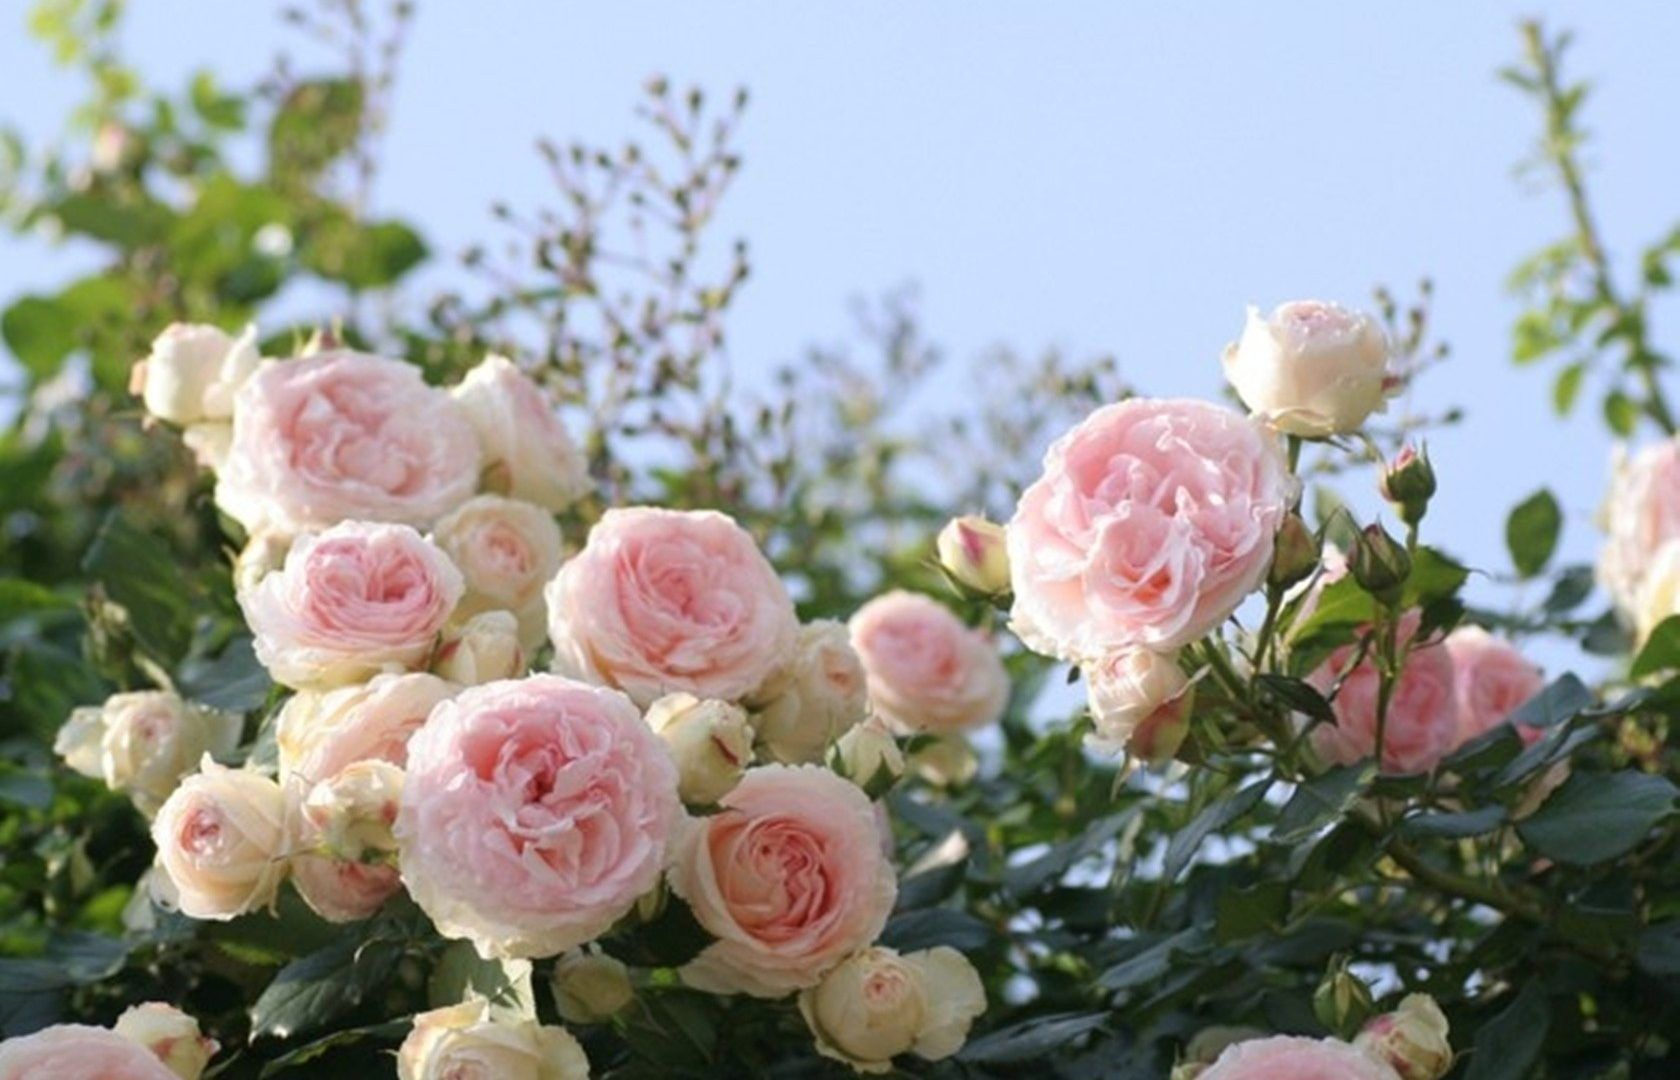 Flowers: Roses Pink Flowers Soft Nature Flower Wallpaper For Desktop ...